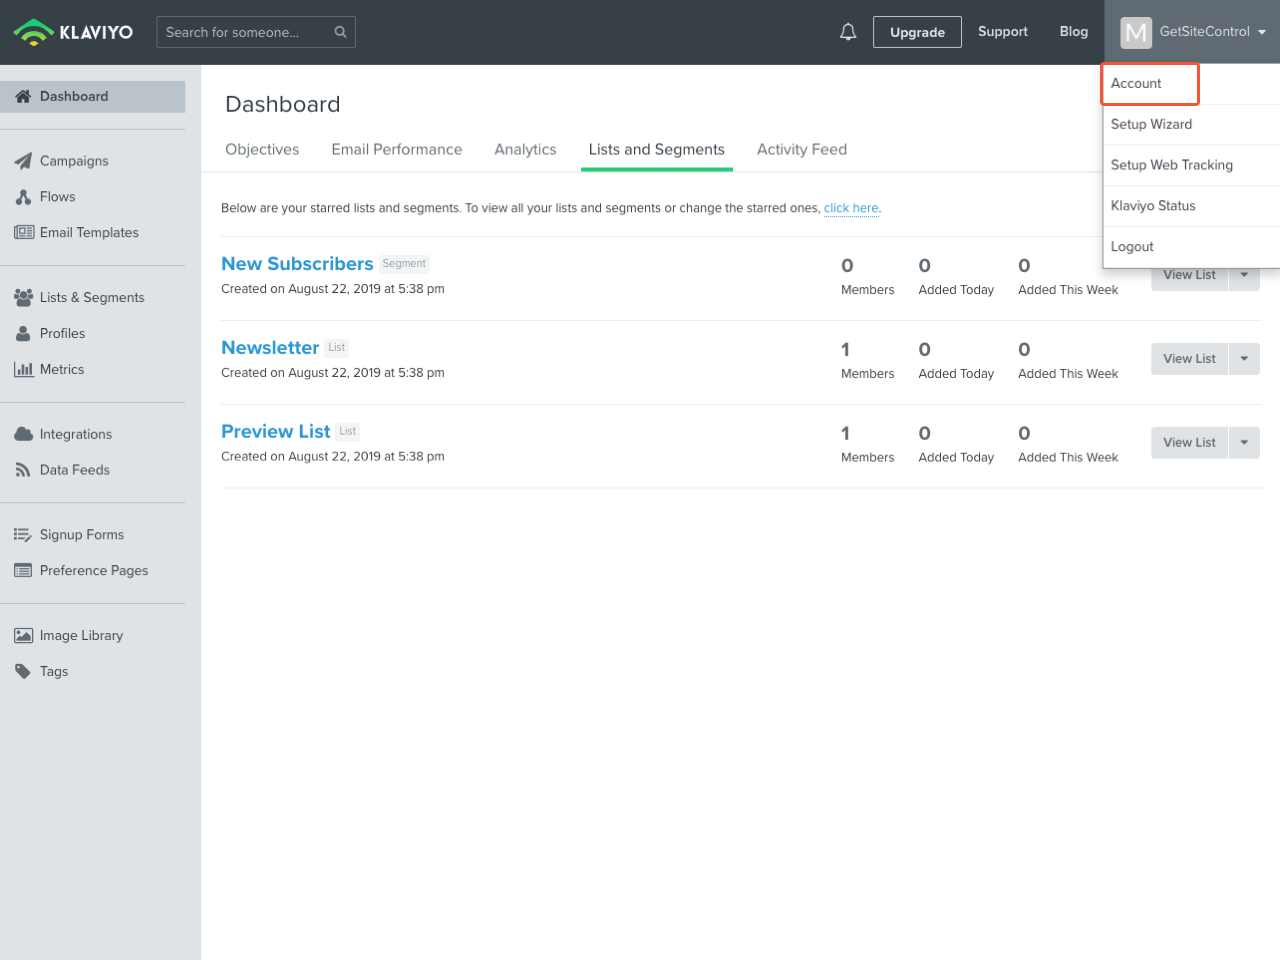 Klaviyo control panel with the highlighted Account menu item